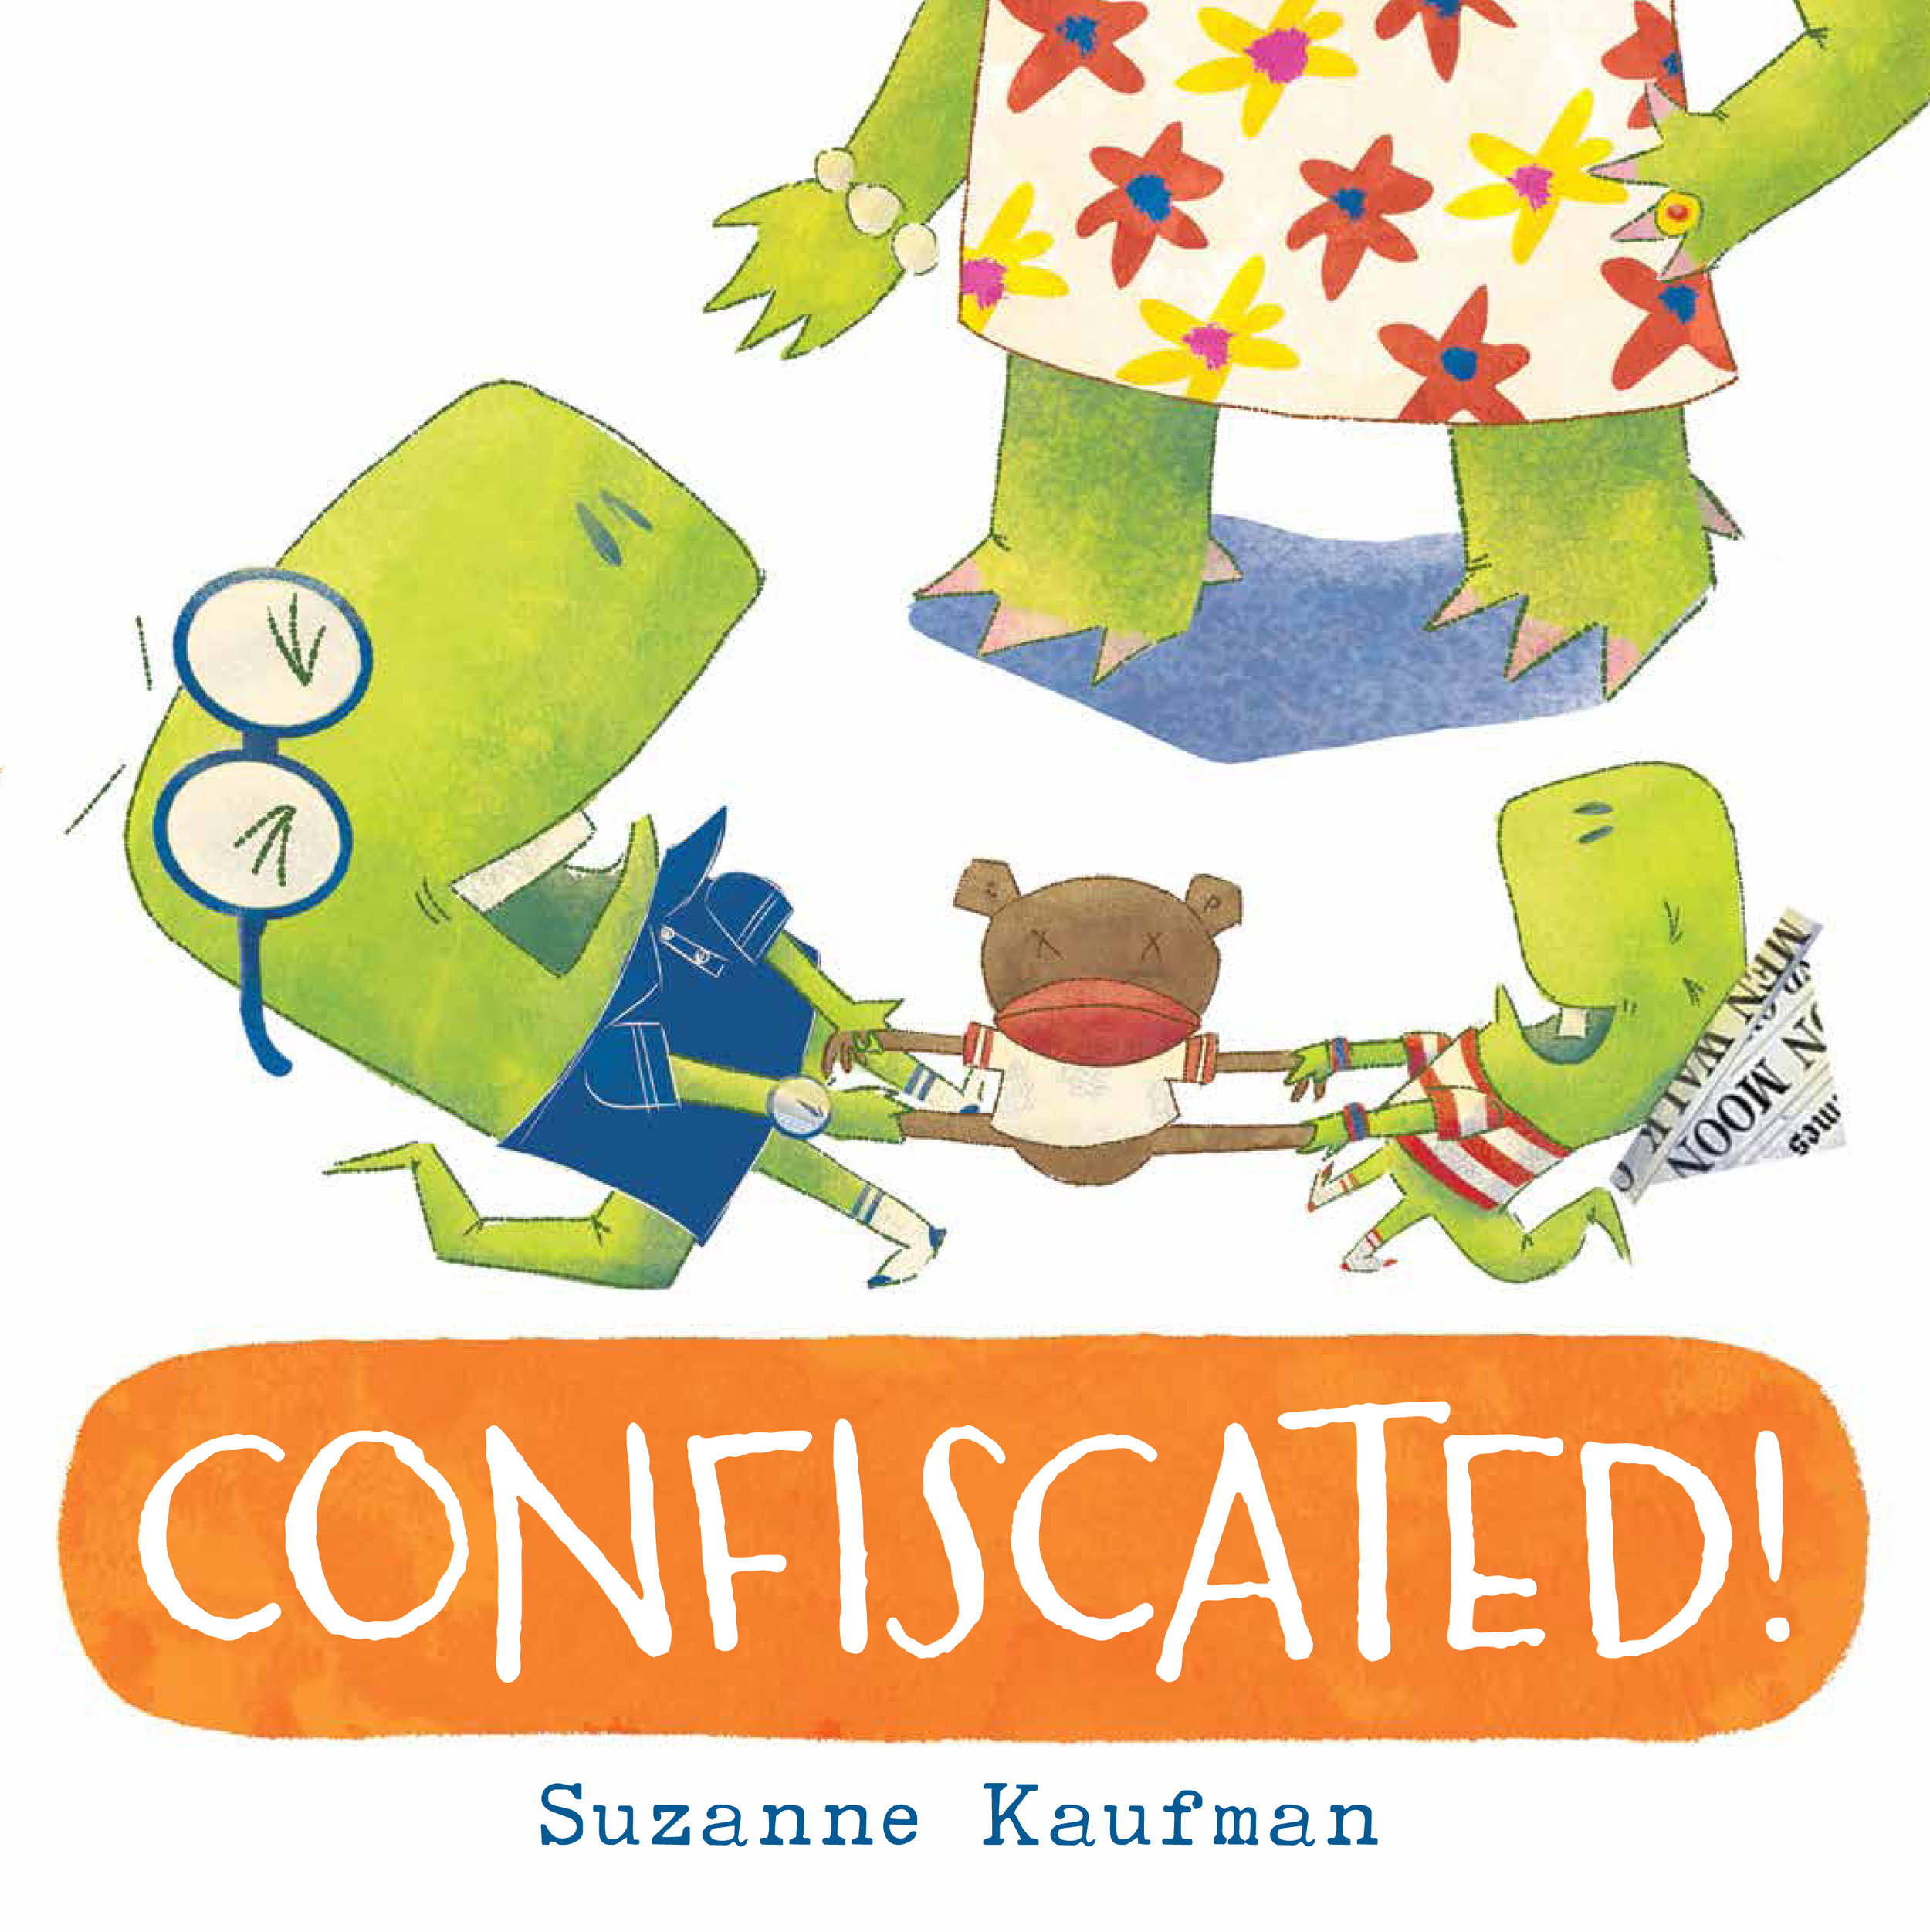 Confiscated__high_res_suzannekaufman.jpg